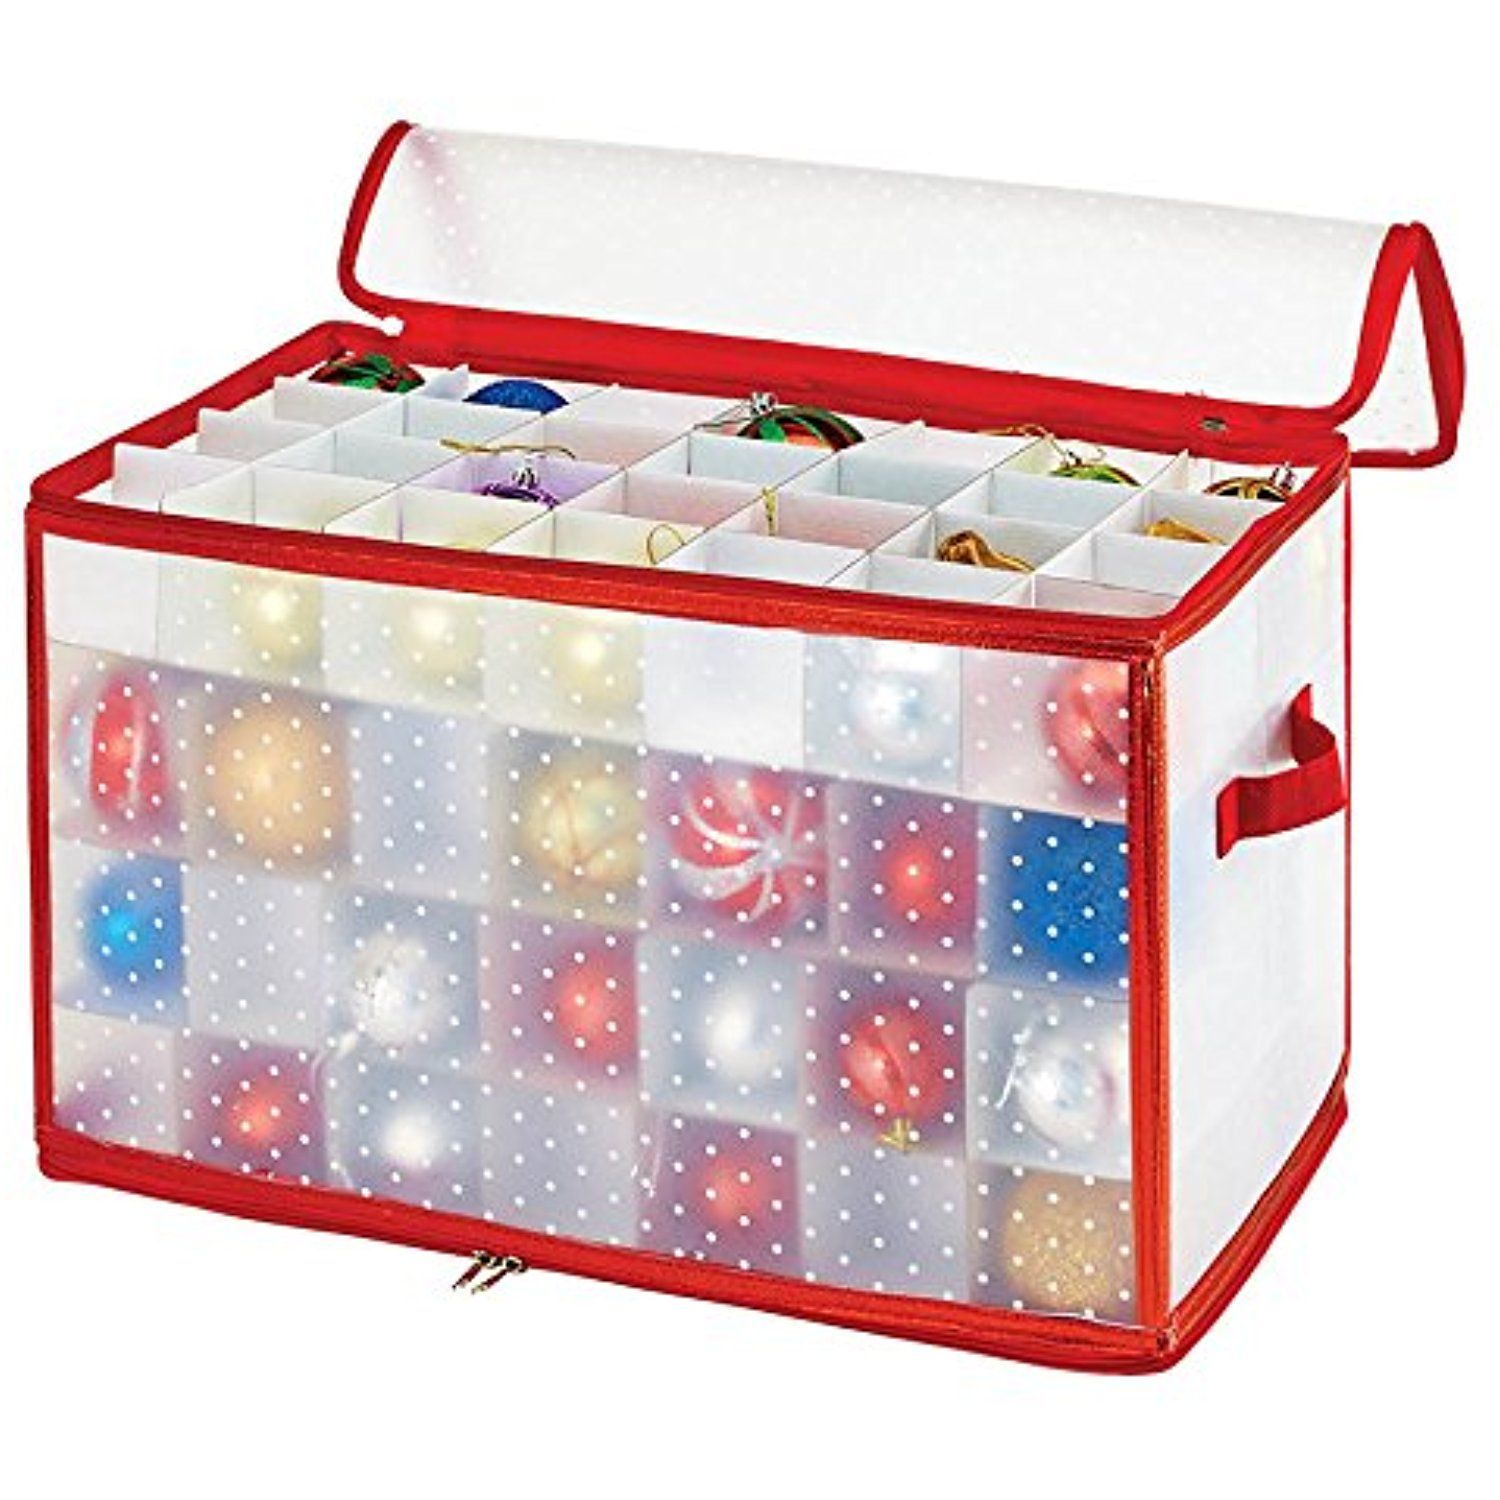 Christmas Tree Storage Box Rubbermaid New Simplify 112Count Christmas Ornament Storage Box  Click On The Inspiration